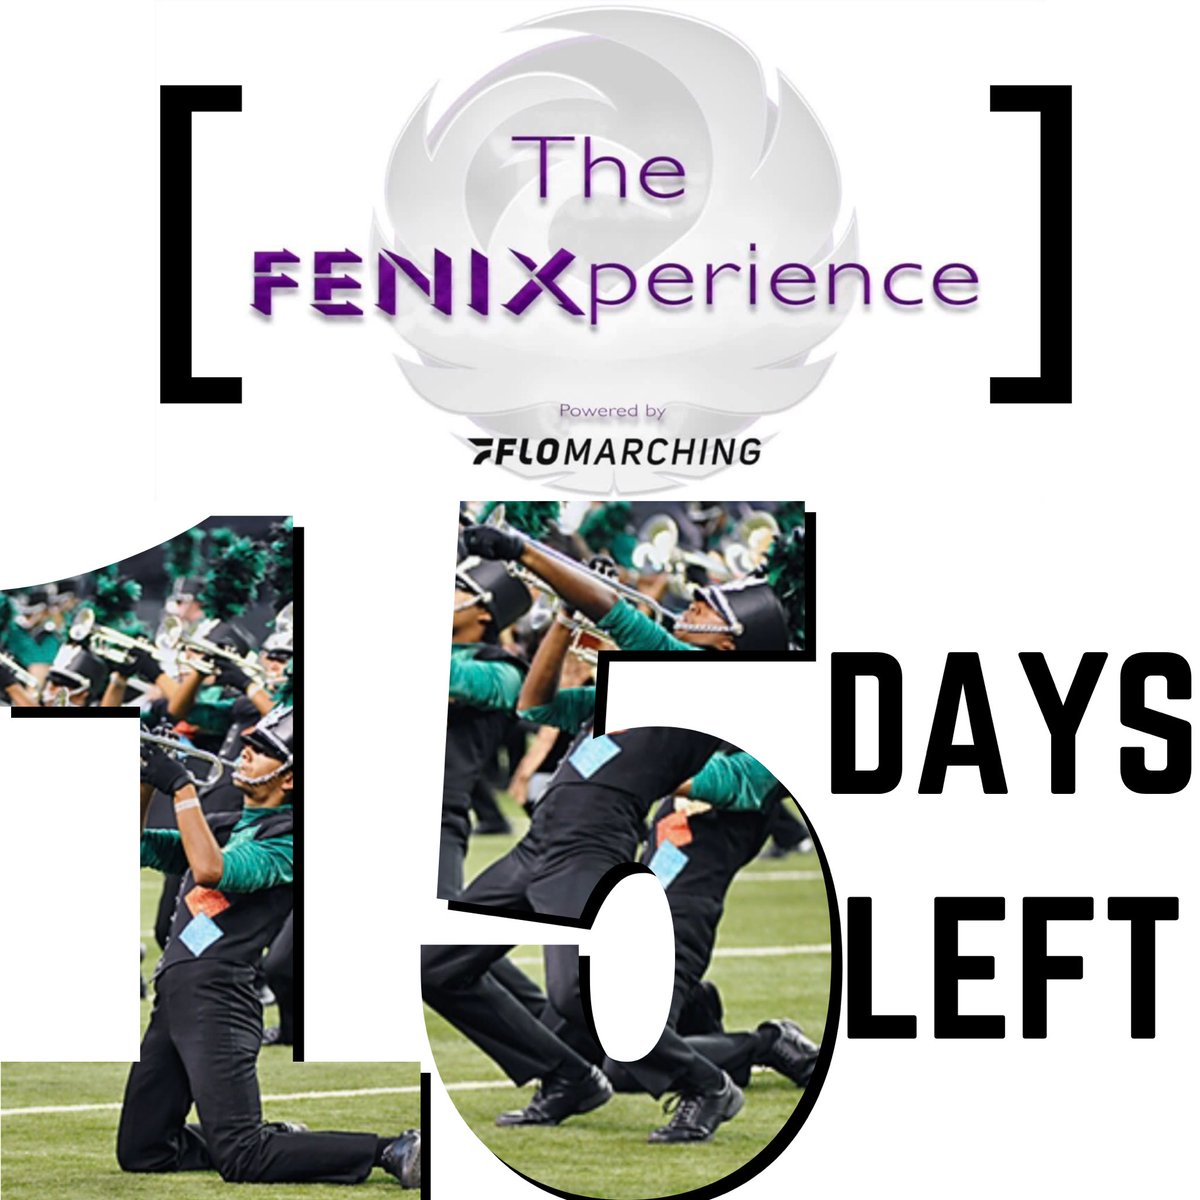 Only 15 days left to register for our FENIXperience (Powered by FloMarching)! Visit our website for more information ➡️   #fenixfam #genesisdbc #drumcorps #dci #dcicolorguard #dcipercussion #dcibrass #pureimagination #FENIXperience #auditions #band